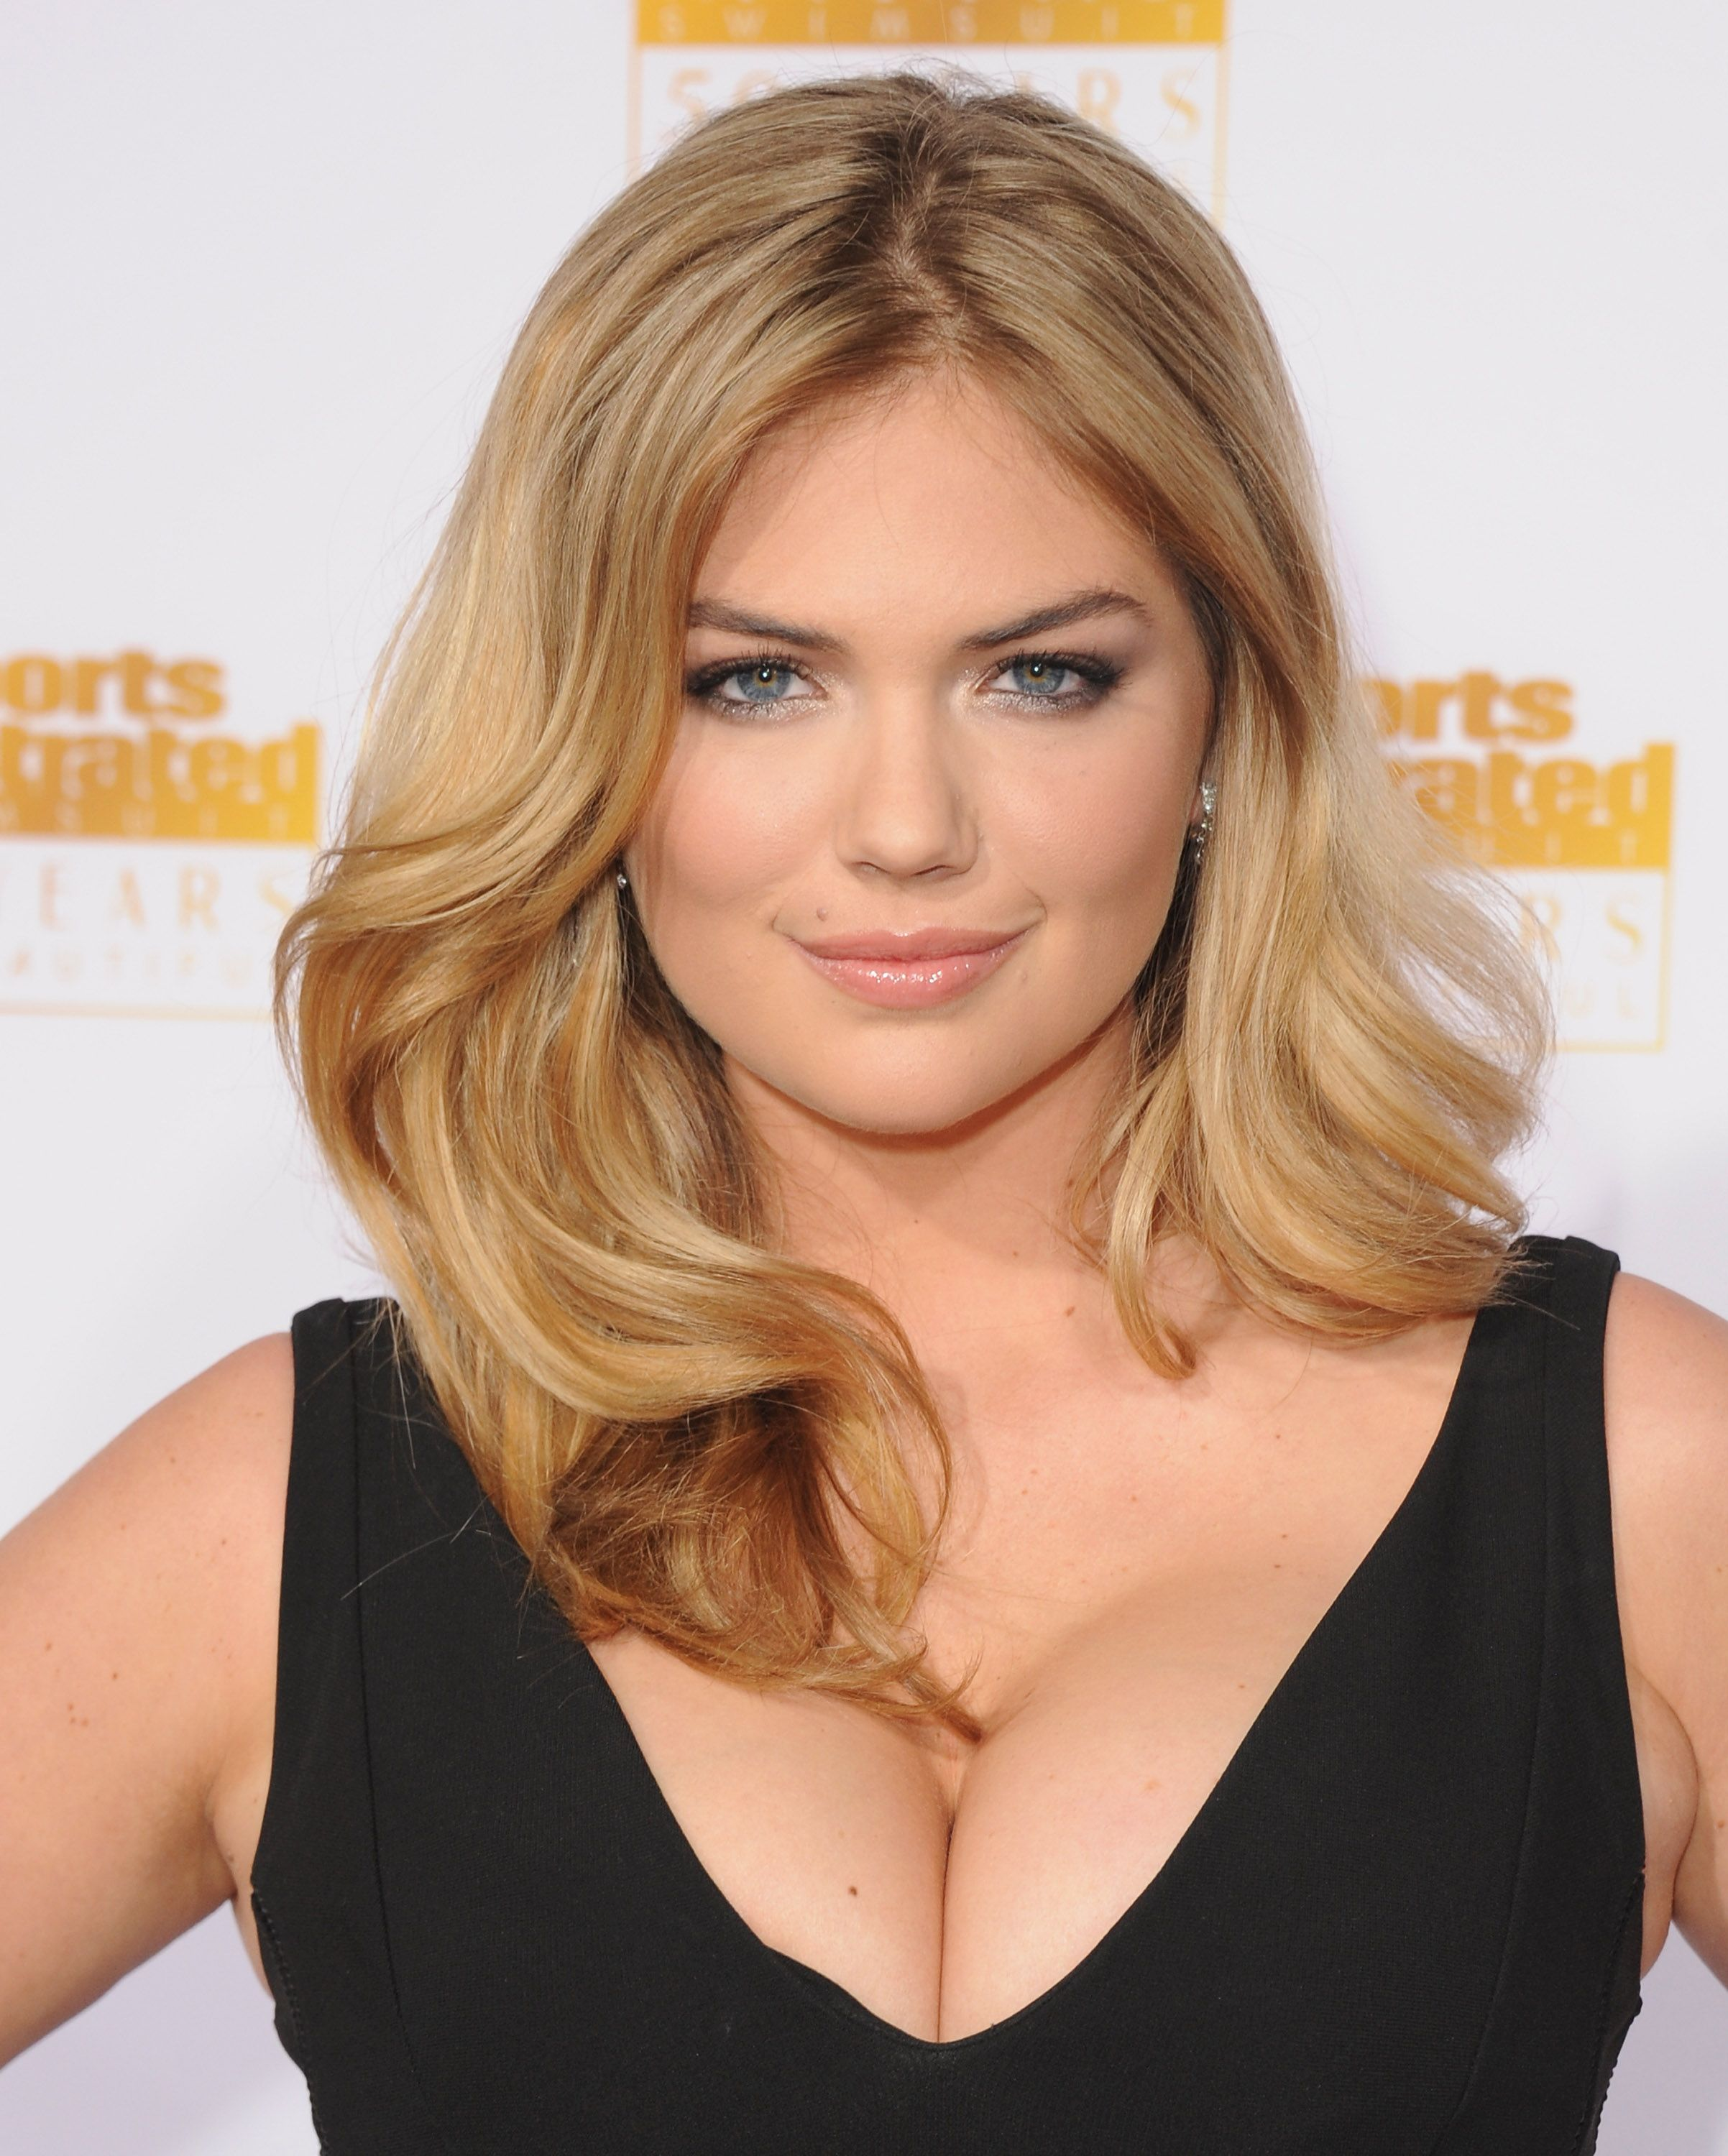 21 Problems Only Women With Big Boobs Understand